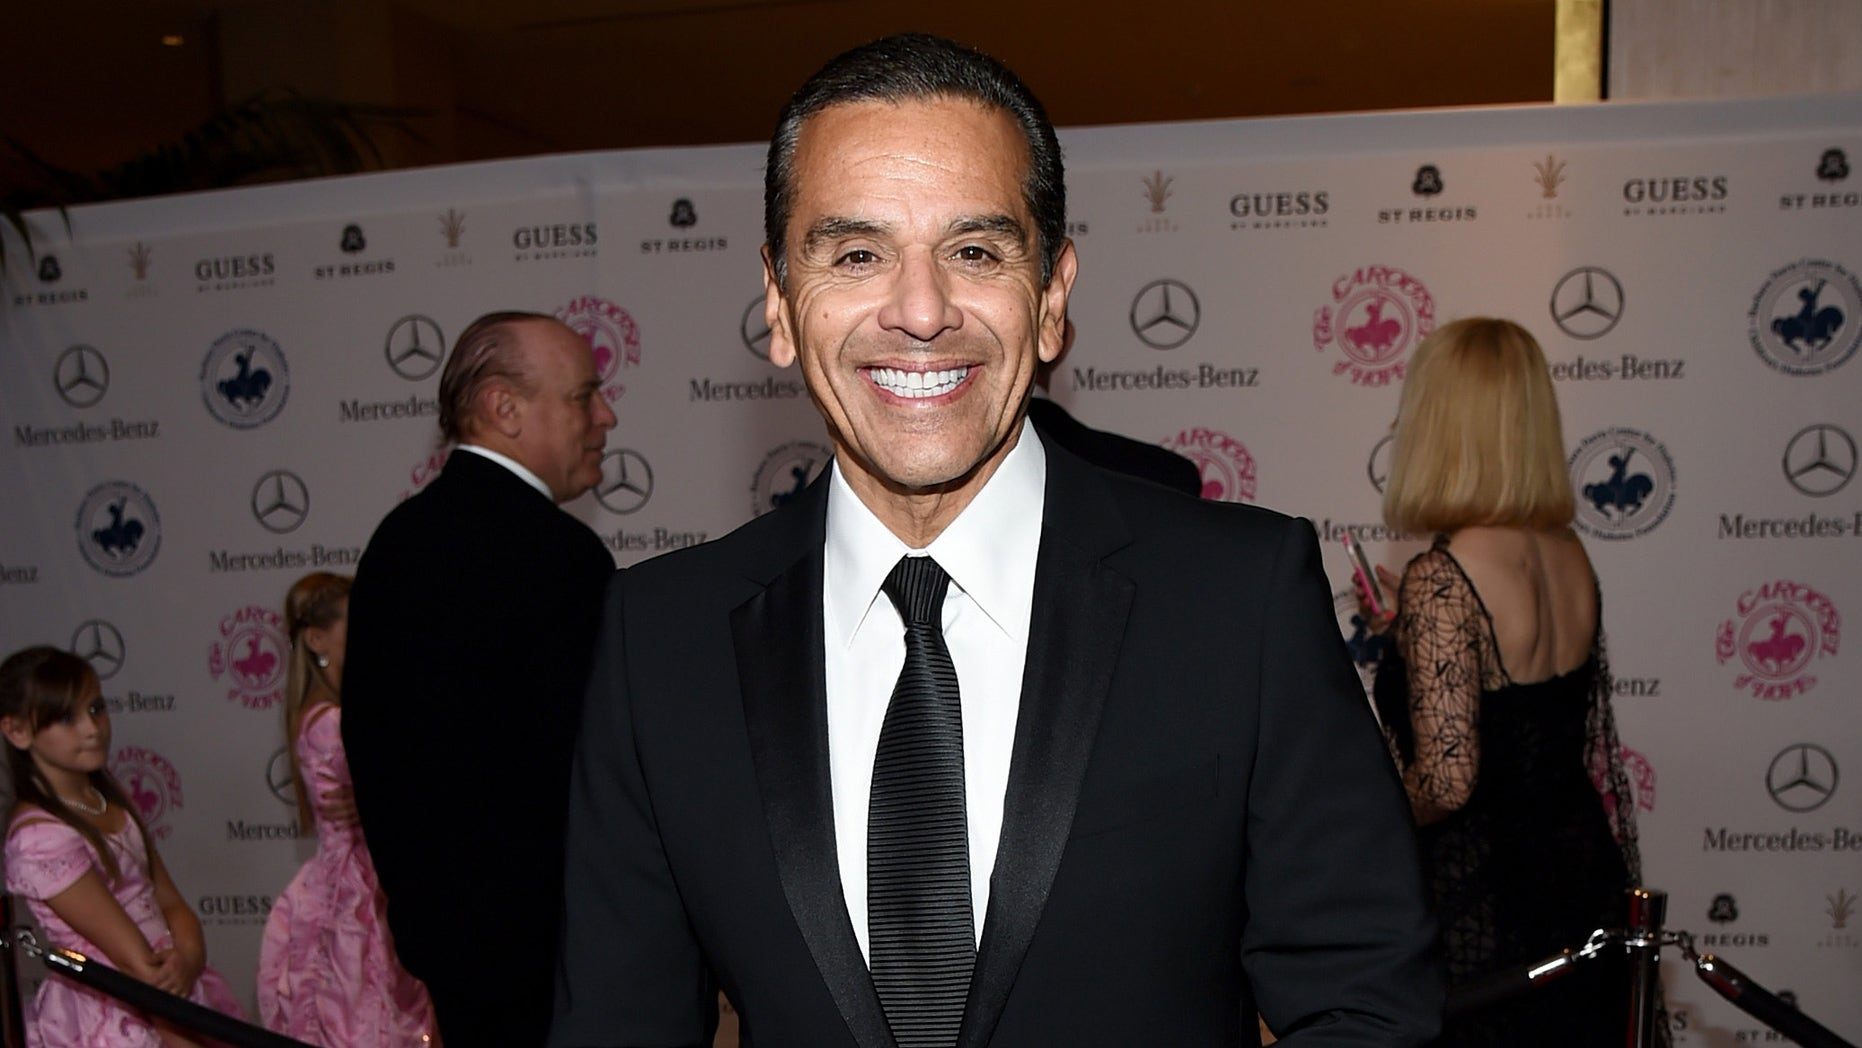 BEVERLY HILLS, CA - OCTOBER 11:  Former Los Angeles Mayor Antonio Villaraigosa attends the 2014 Carousel of Hope Ball presented by Mercedes-Benz at The Beverly Hilton Hotel on October 11, 2014 in Beverly Hills, California.  (Photo by Michael Buckner/Getty Images)